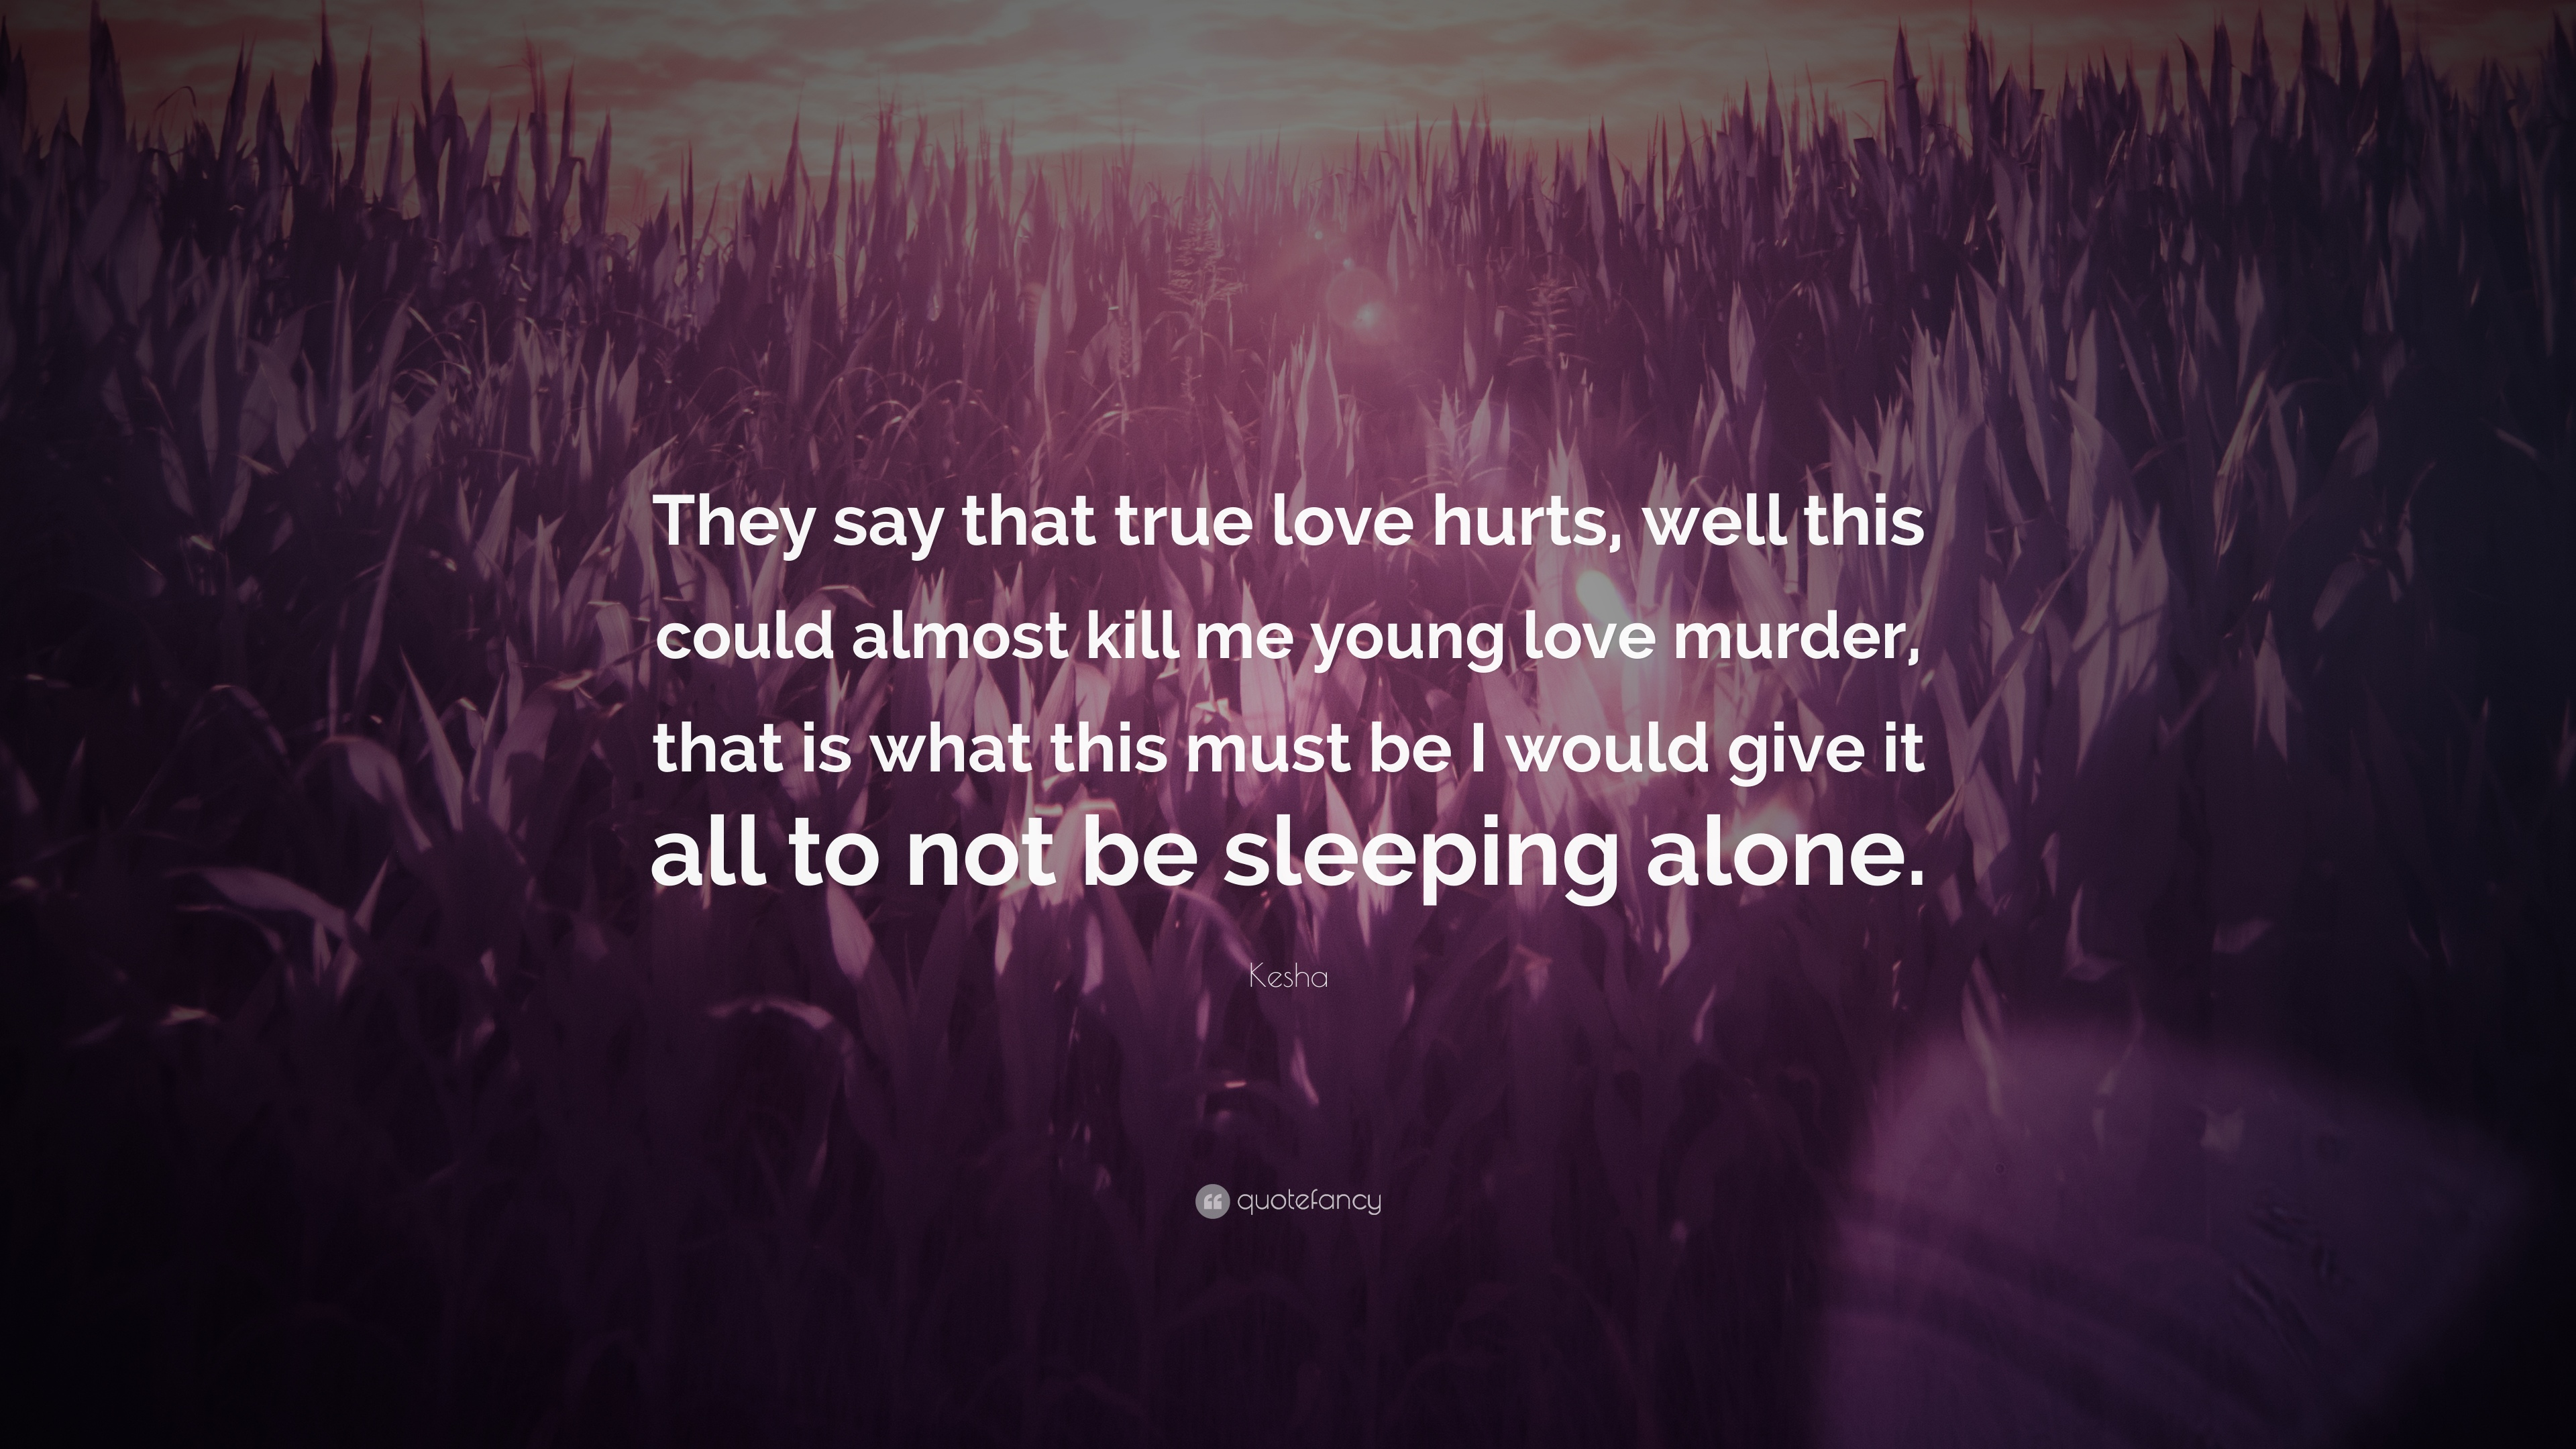 True Love Quotes Wallpaper: Love Hurts Images Photos Wallpapers